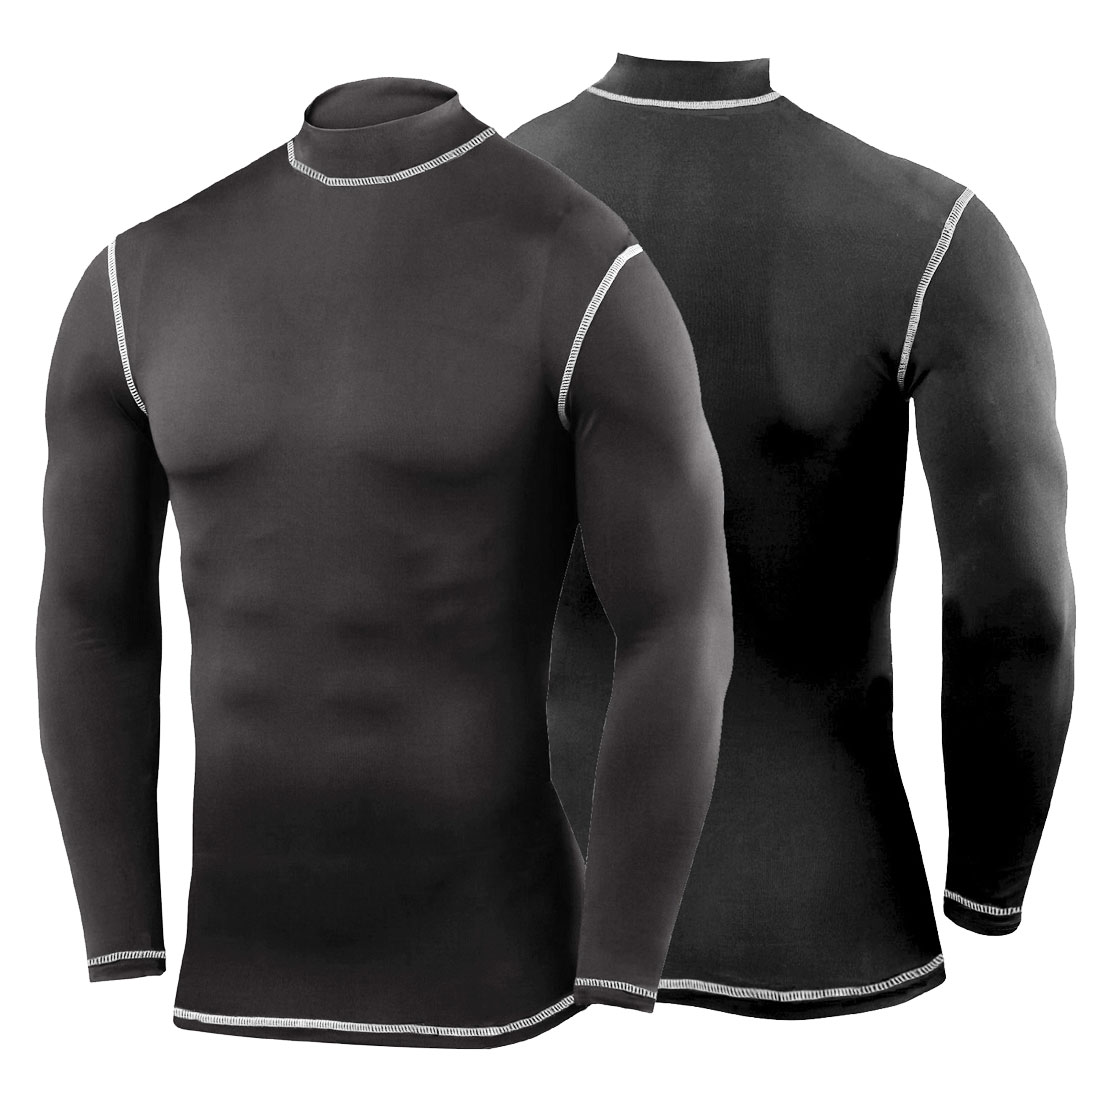 Mens sports compression shorts pants shirts workout base for Compression tee shirts for men